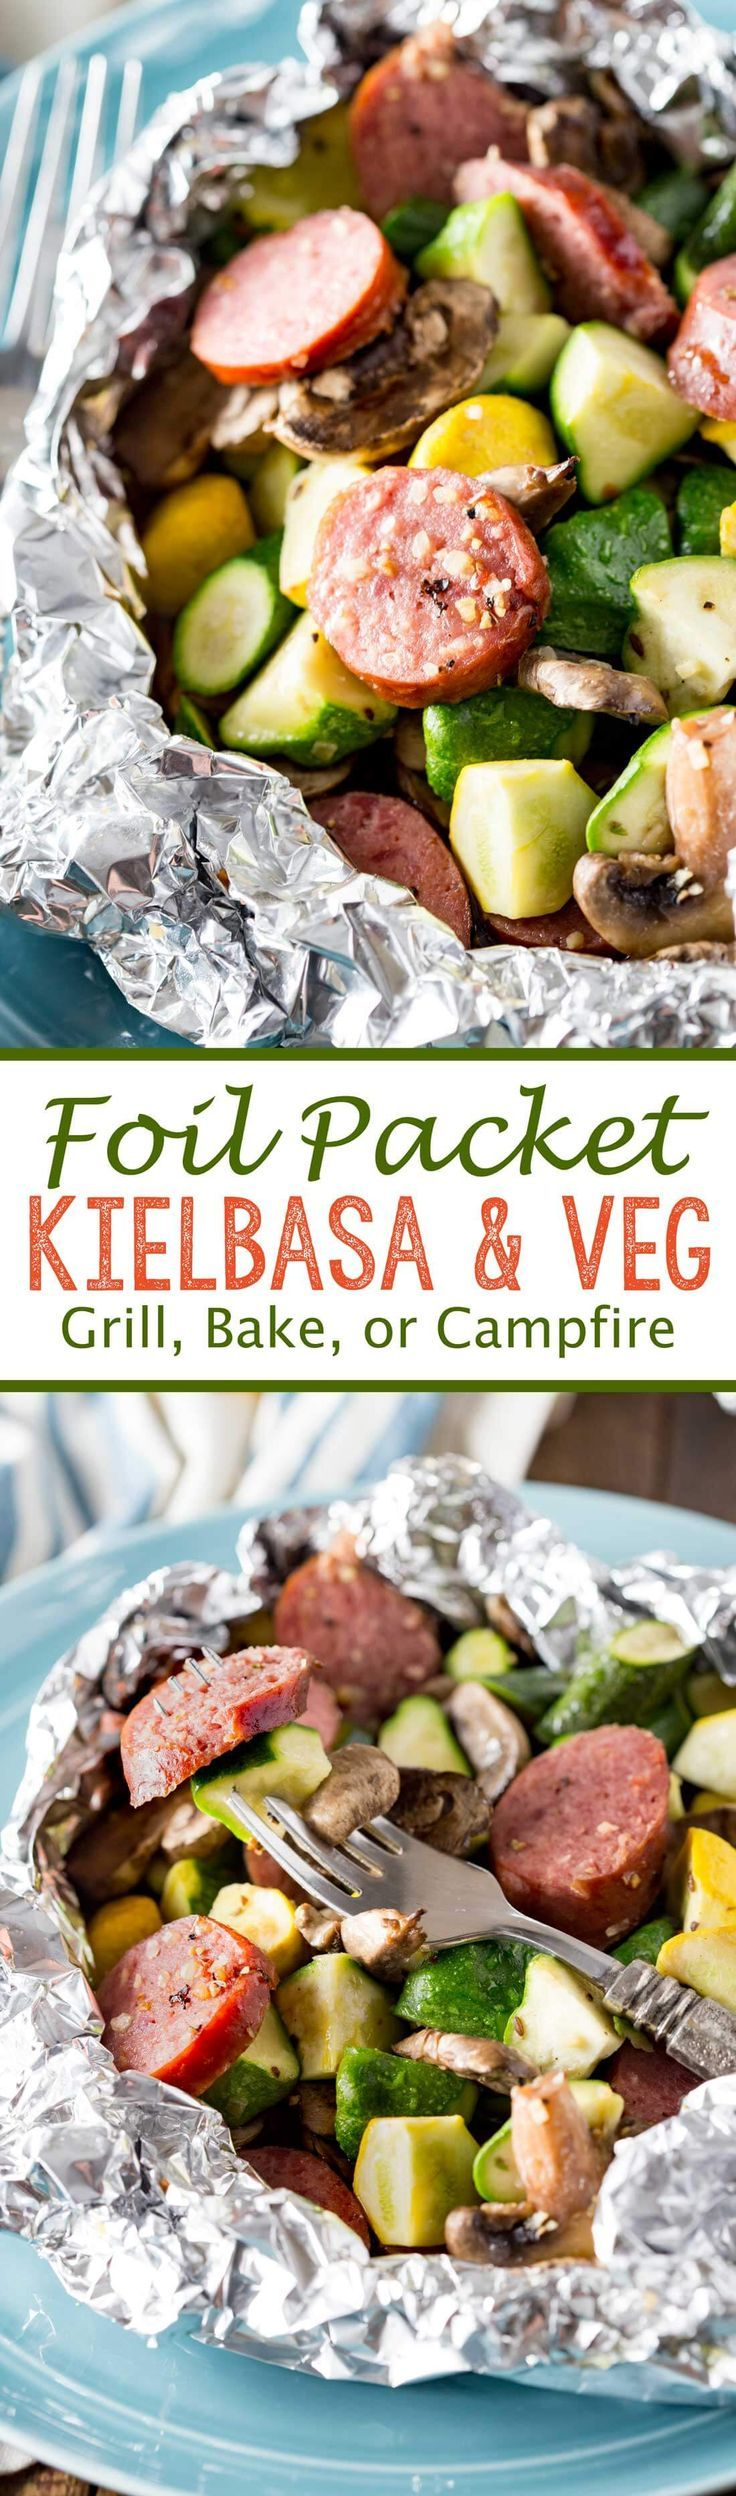 Foil Packet Kielbasa Recipe. A simple meal of kielbasa sausage and fresh garden yellow squash and zucchini, and mushrooms, lightly seasoned, and cooked in Handi-Foil for the perfect, simple meal. Insane flavor and only 5 minutes prep required.